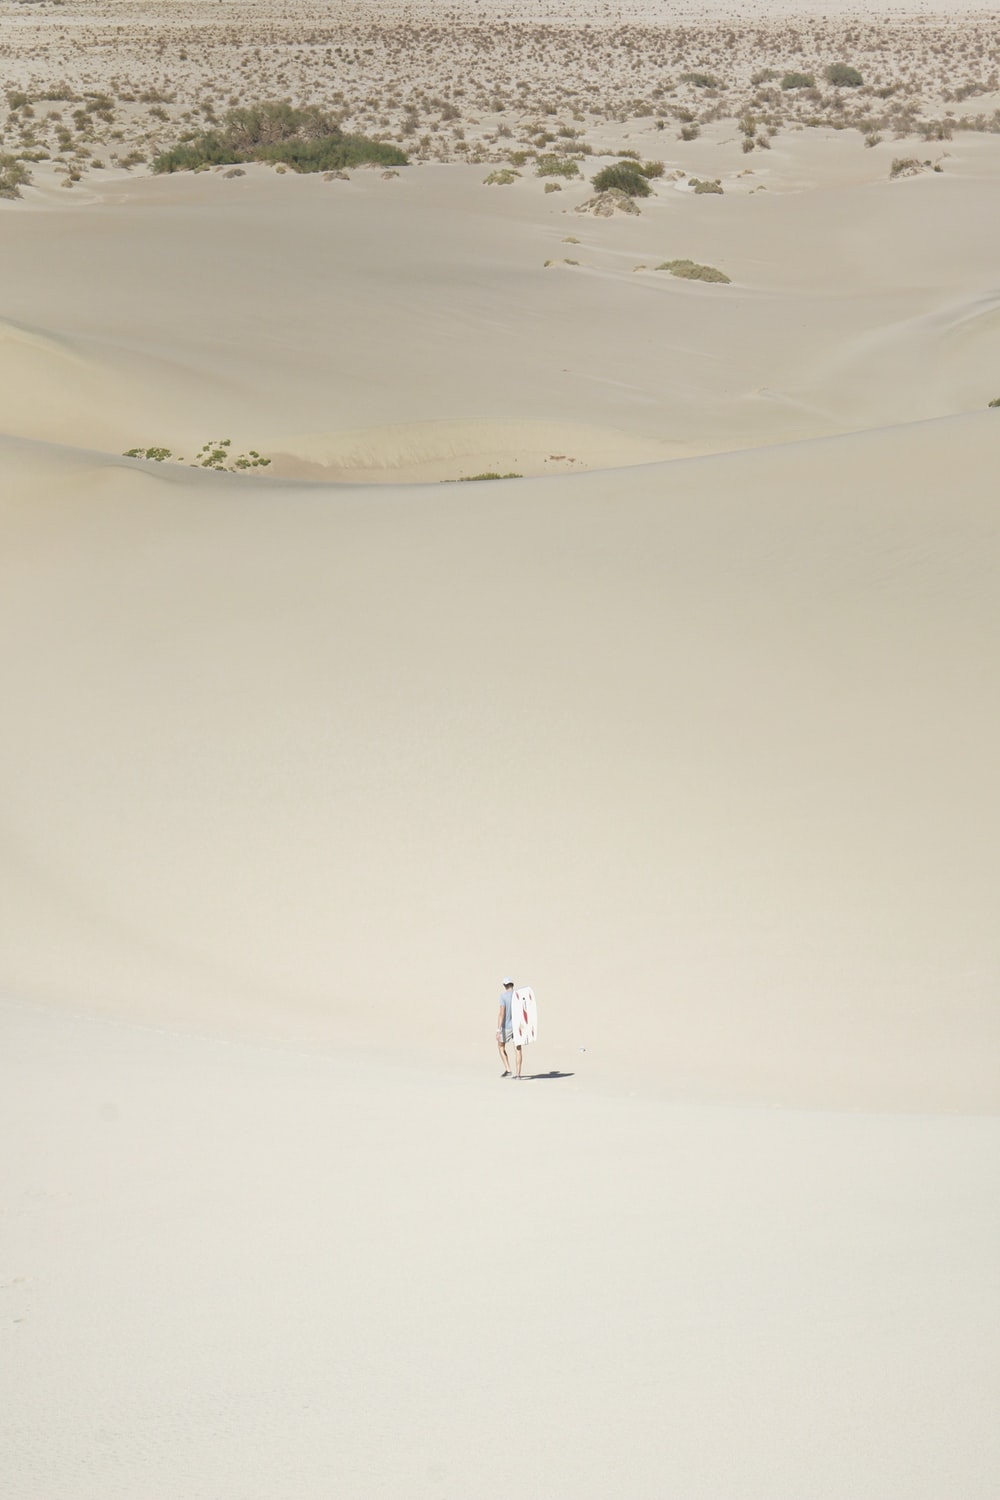 person in white shirt walking on sand